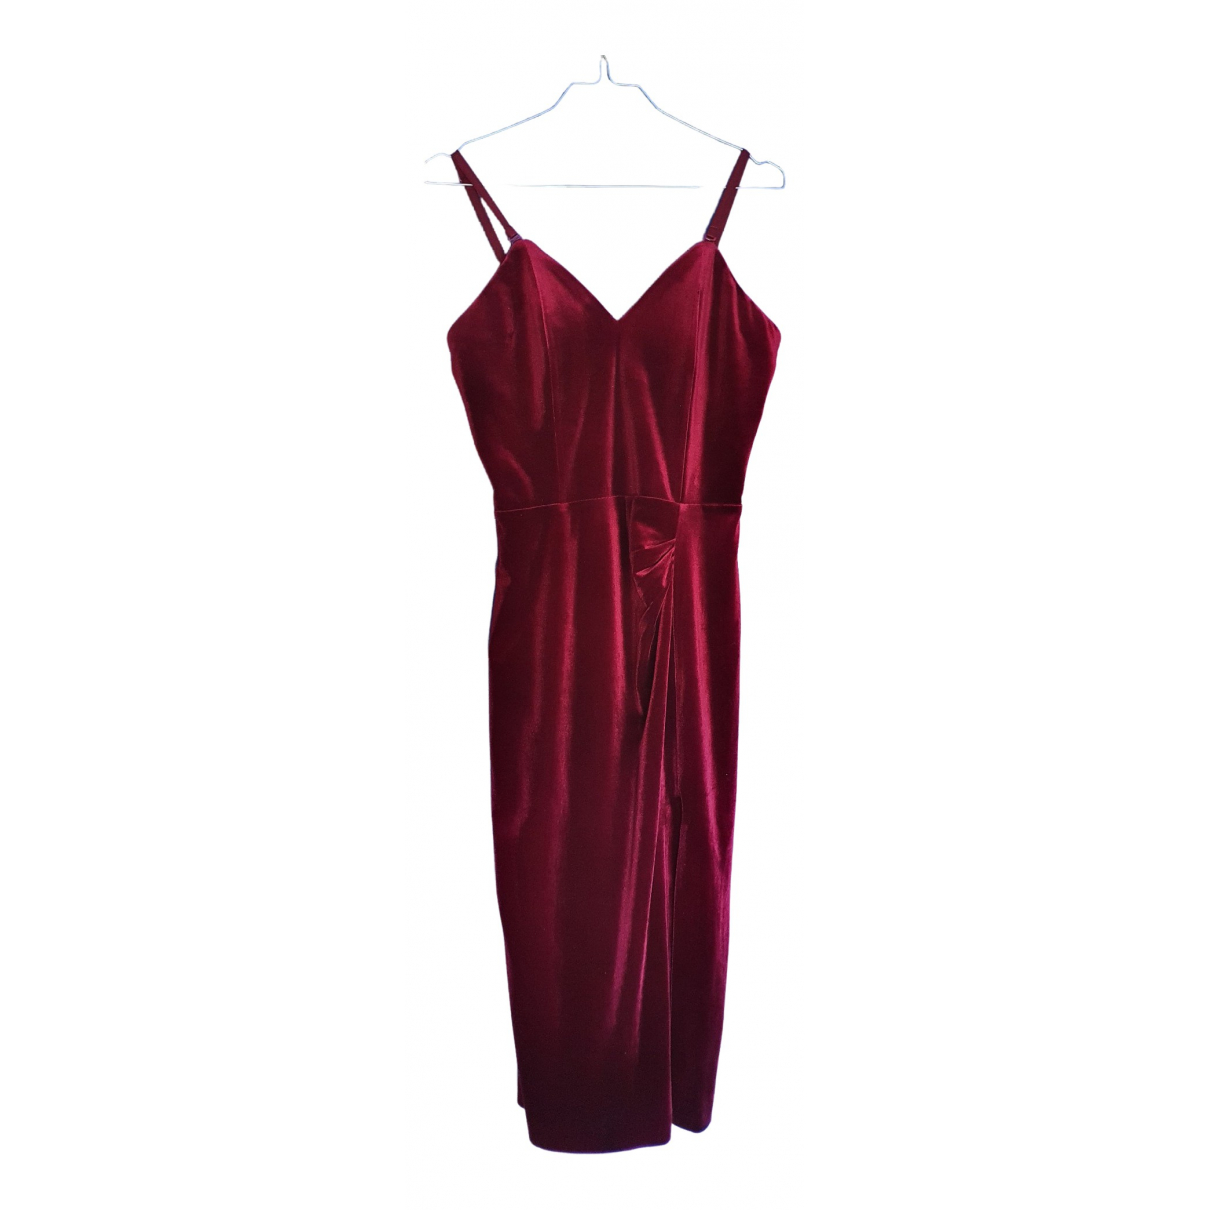 Guess \N Burgundy dress for Women 44 FR